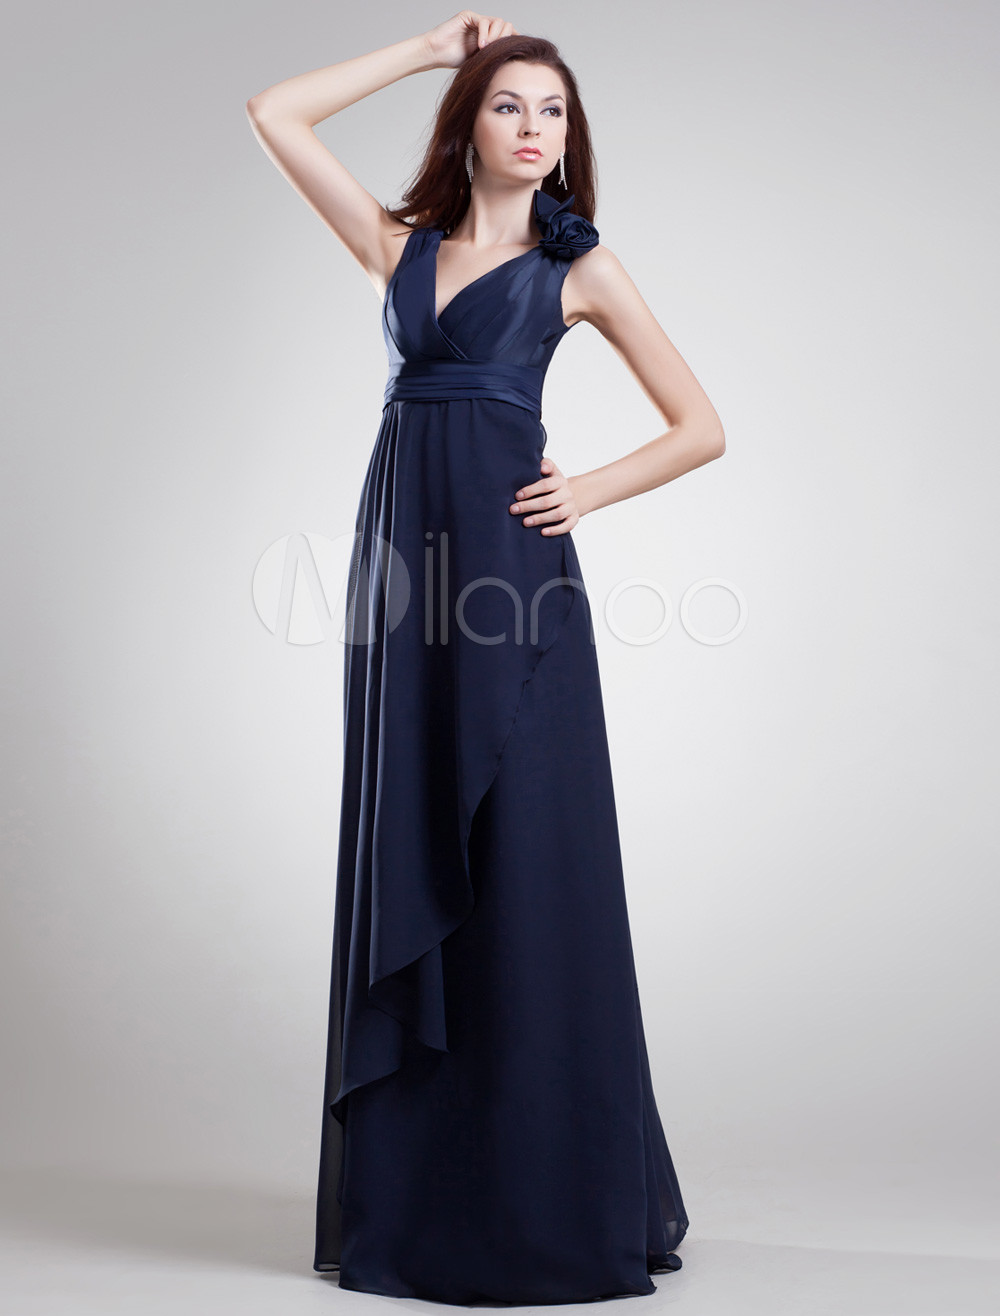 Buy Chic Dark Navy Chiffon Floral V-Neck Sexy Evening Dress for $119.99 in Milanoo store